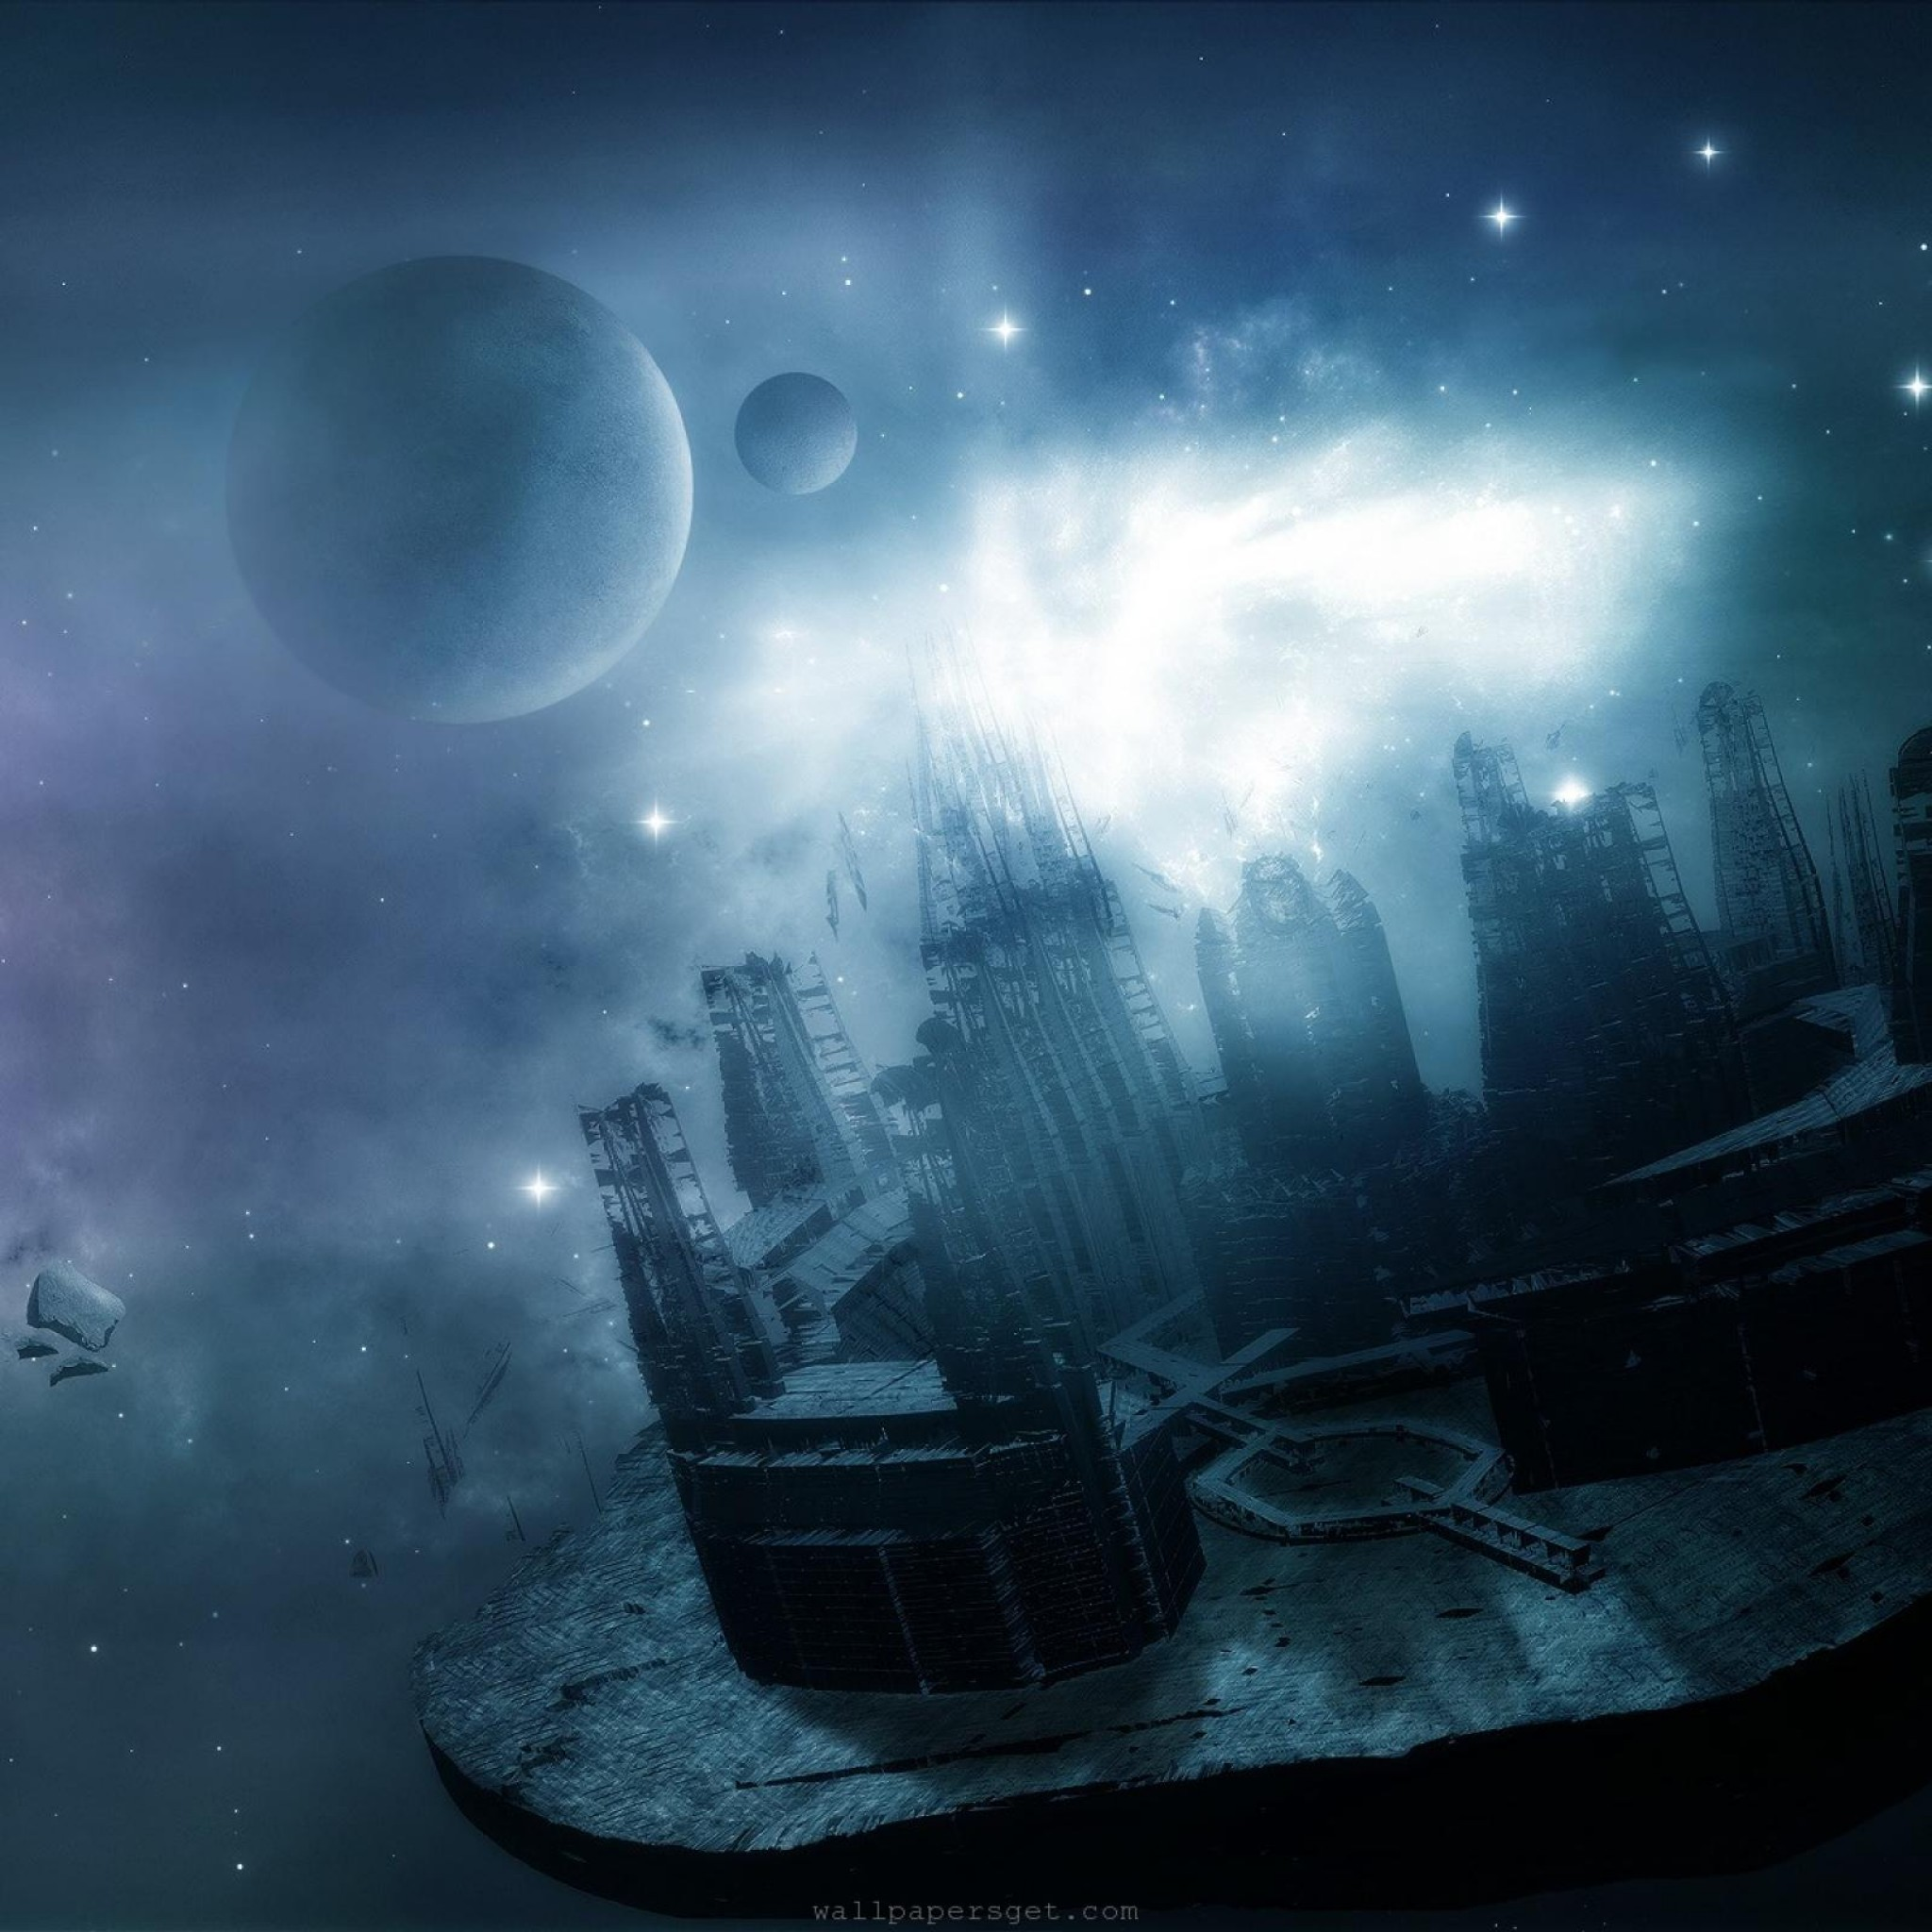 Wallpaper Space: Live Space Wallpaper For PC